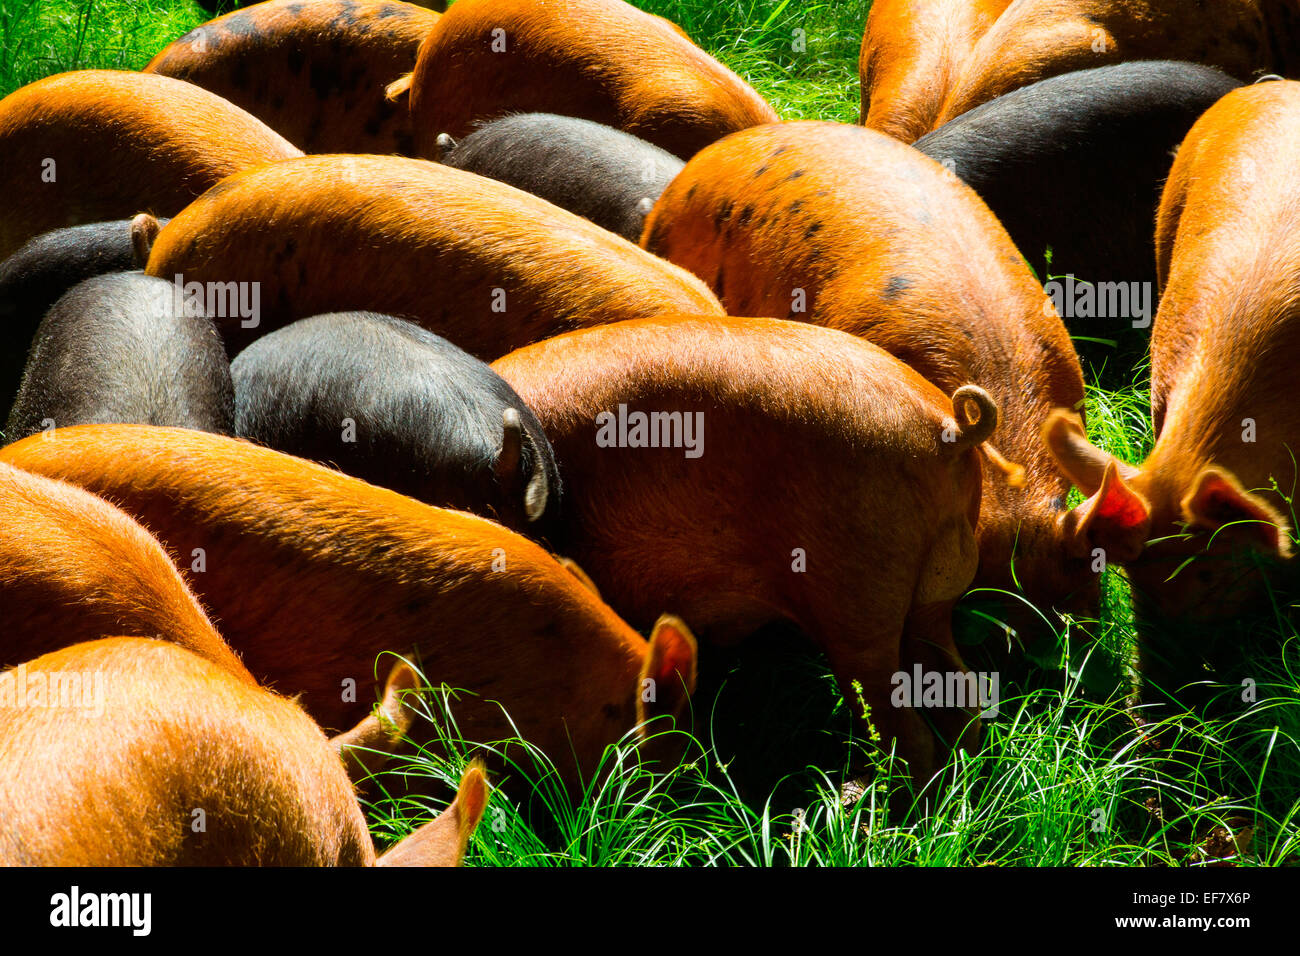 Free range tamworth and berkshire pigs foraging in sunlight - Stock Image